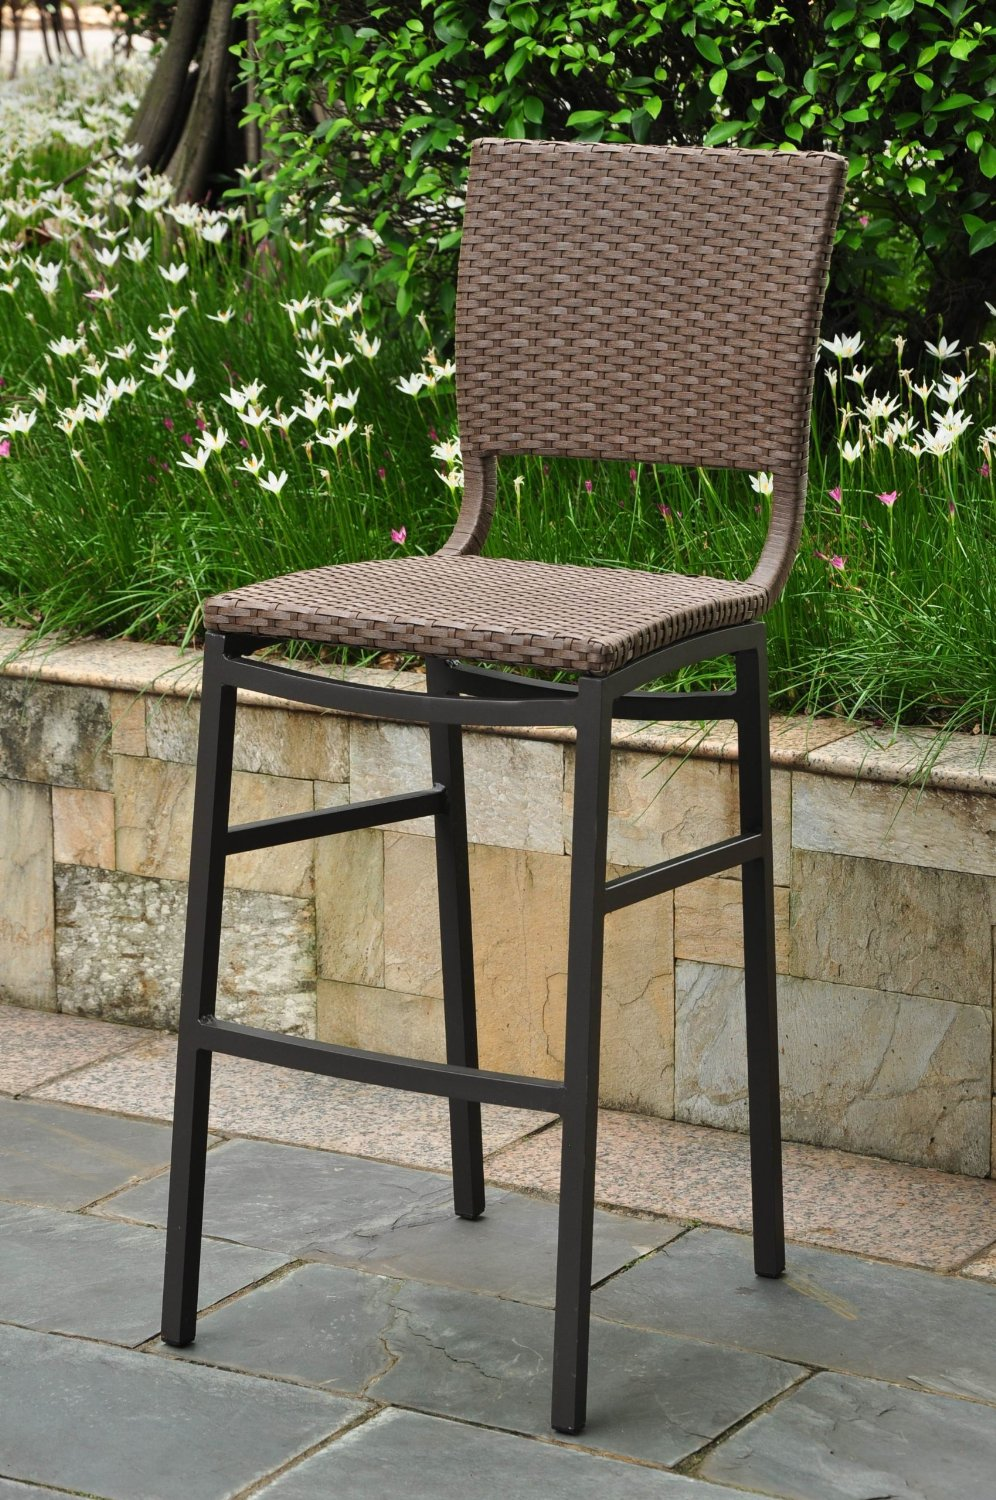 Barcelona Resin Wicker Outdoor Bar Height Chairs ·  Barcelona_resin_wicker_outdoor_stools